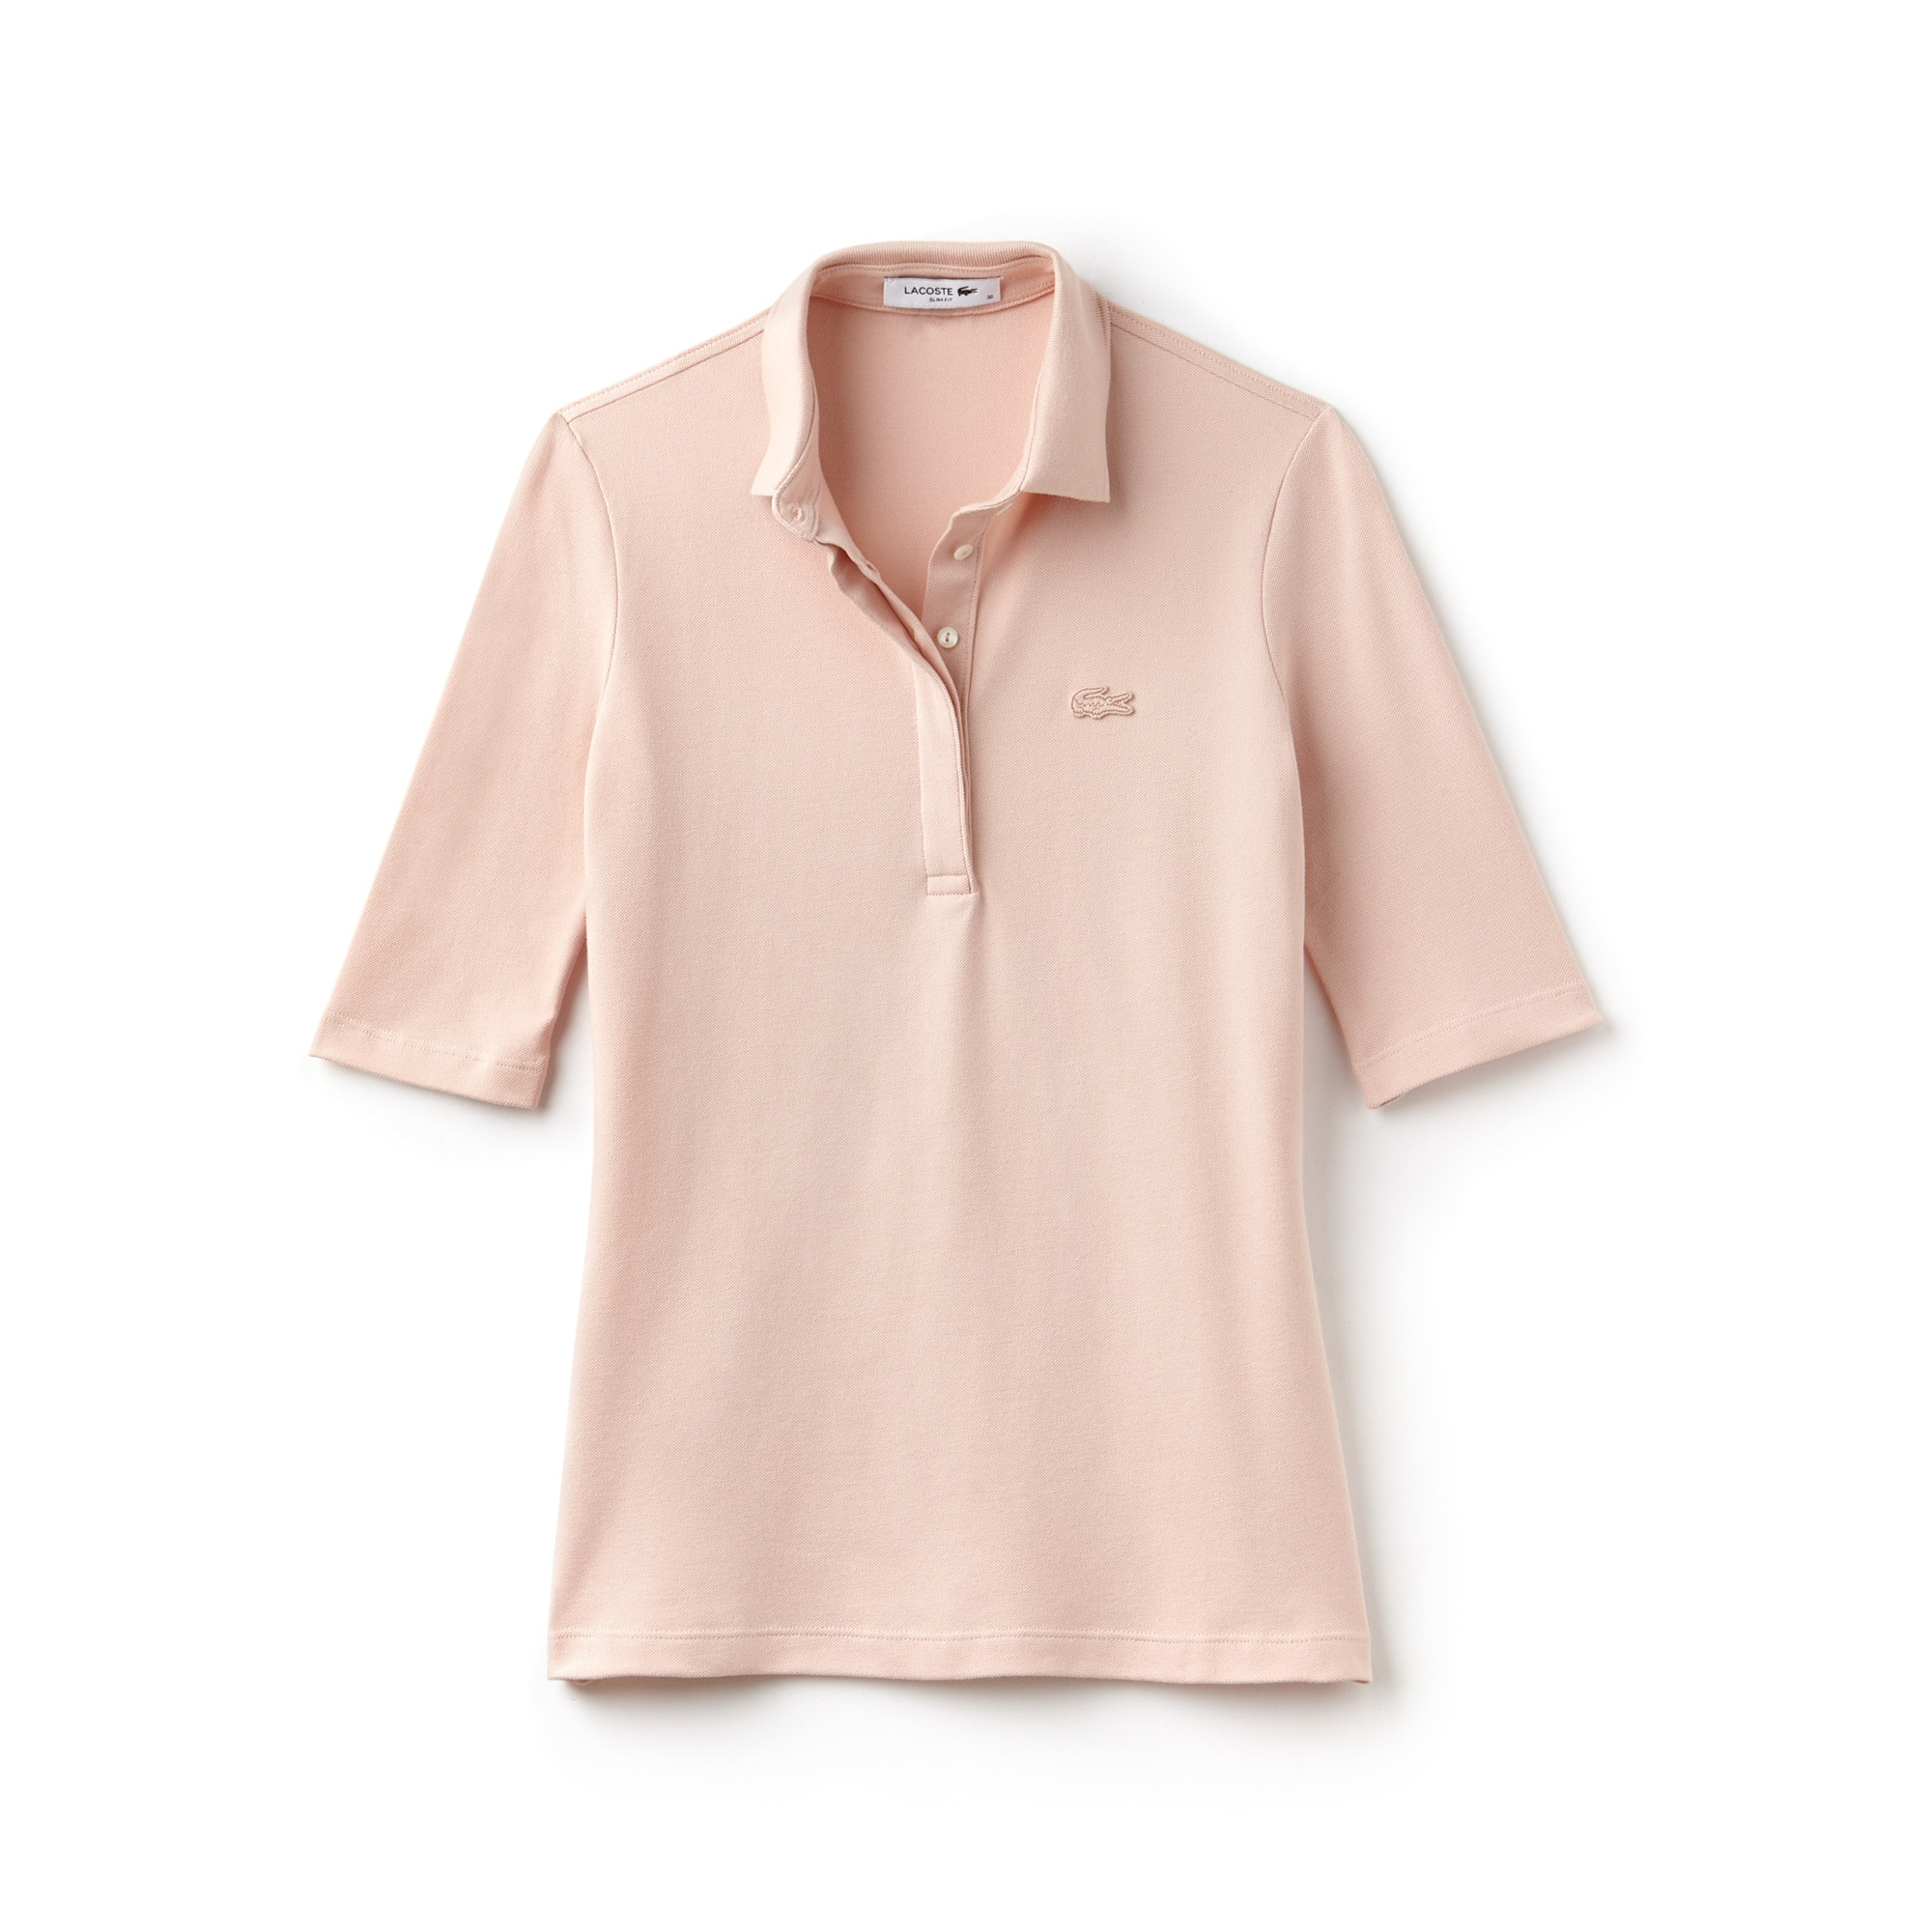 라코스테 Lacoste Womens Slim Fit Stretch Mini Pique Polo Shirt,pink